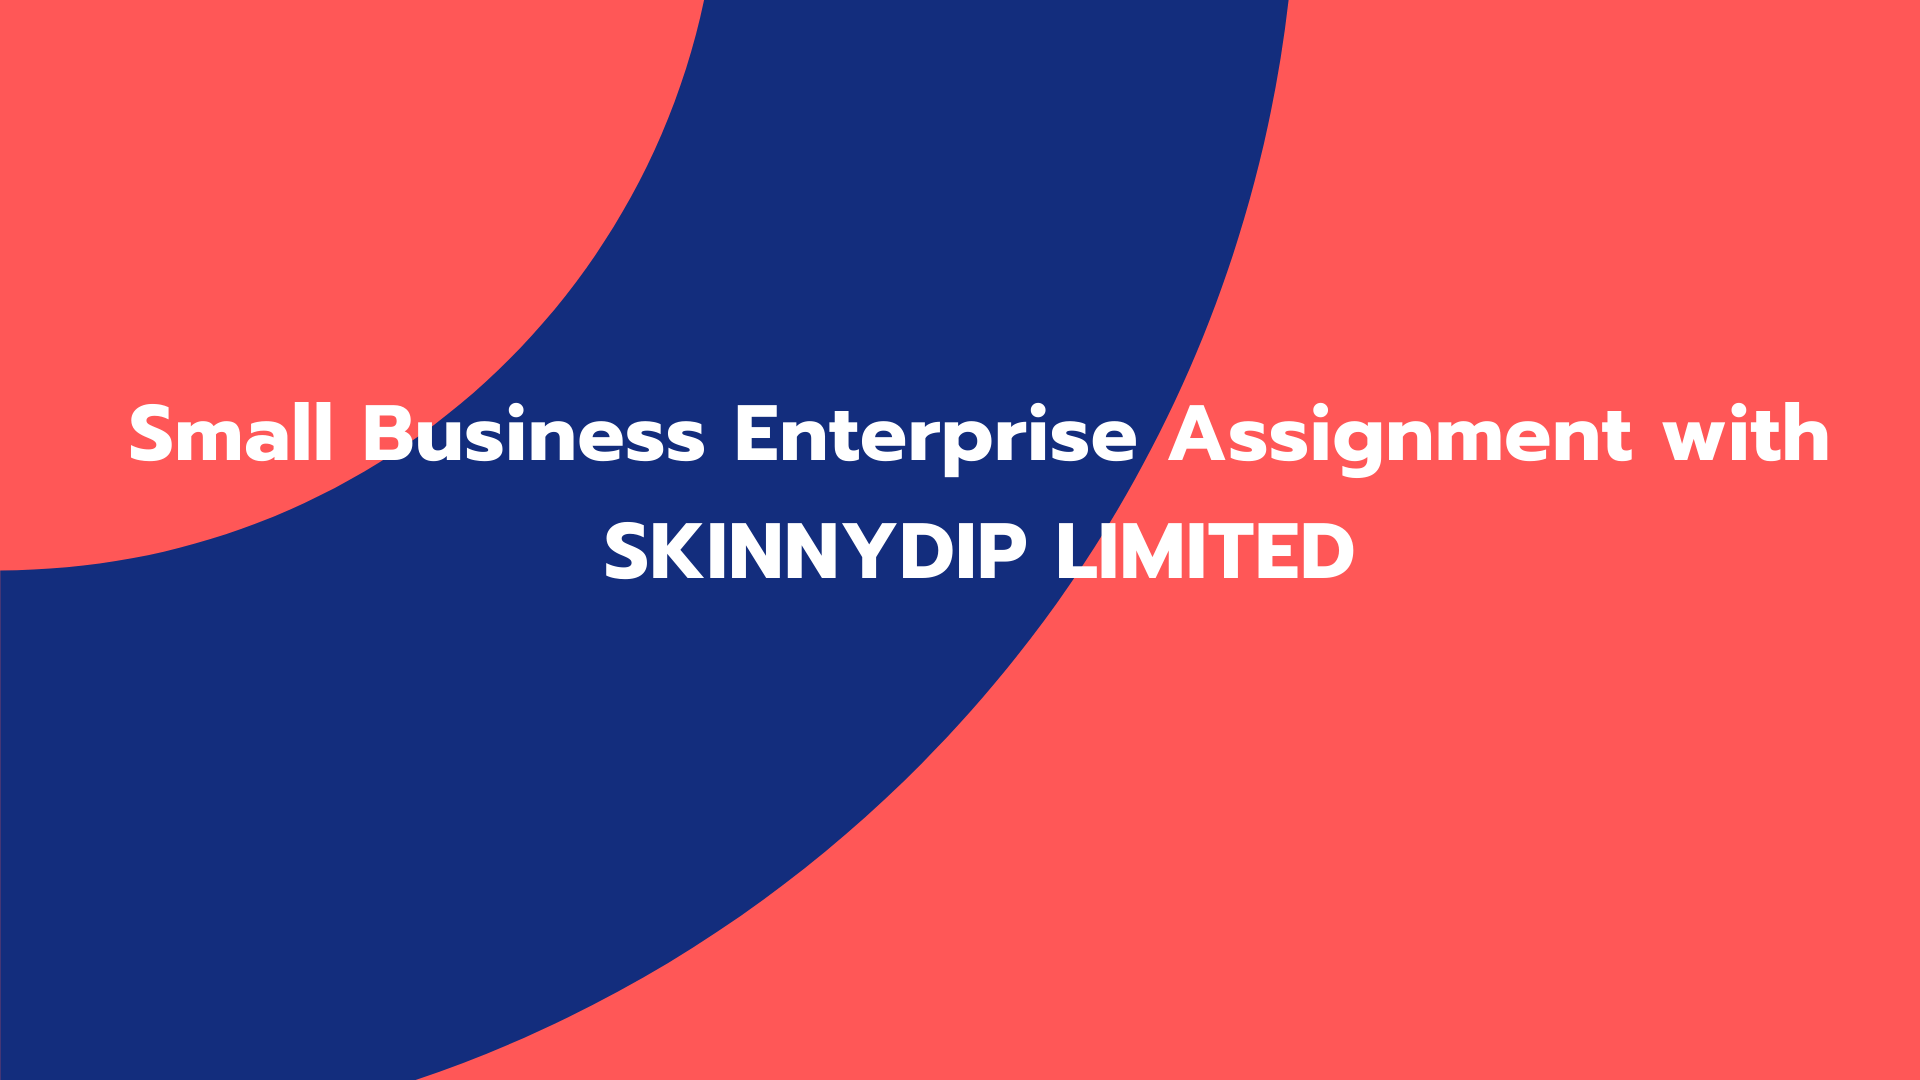 Small Business Enterprise Assignment with SKINNYDIP LIMITED